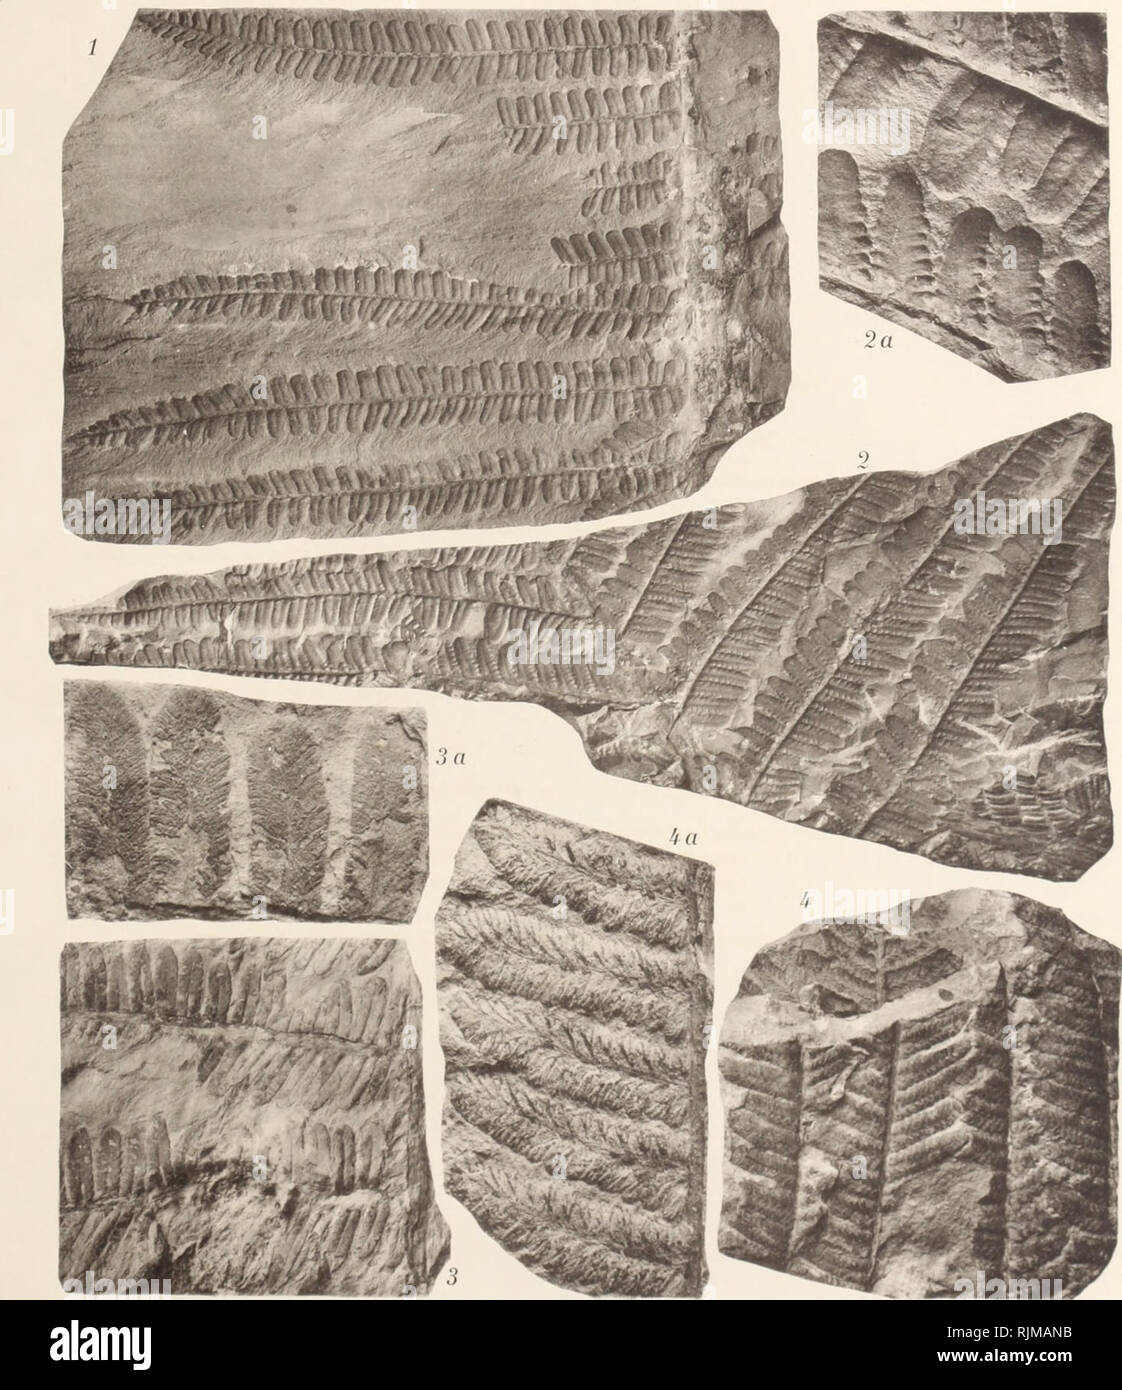 . Bassin houiller et permien de Blanzy et du Creusot. Coal; Coal; Coal; Coal; Plants, Fossil; Plants, Fossil; Geology; Geology. Pl. IX.. Clichés et Phototypie Soliier et O. il Chaiïipigny-Slir-Maroe. Please note that these images are extracted from scanned page images that may have been digitally enhanced for readability - coloration and appearance of these illustrations may not perfectly resemble the original work.. Delafond, Frédéric, 1842-1933; Zeiller, R. (René), 1847-1915. Paris, Imprimerie nationale - Stock Image